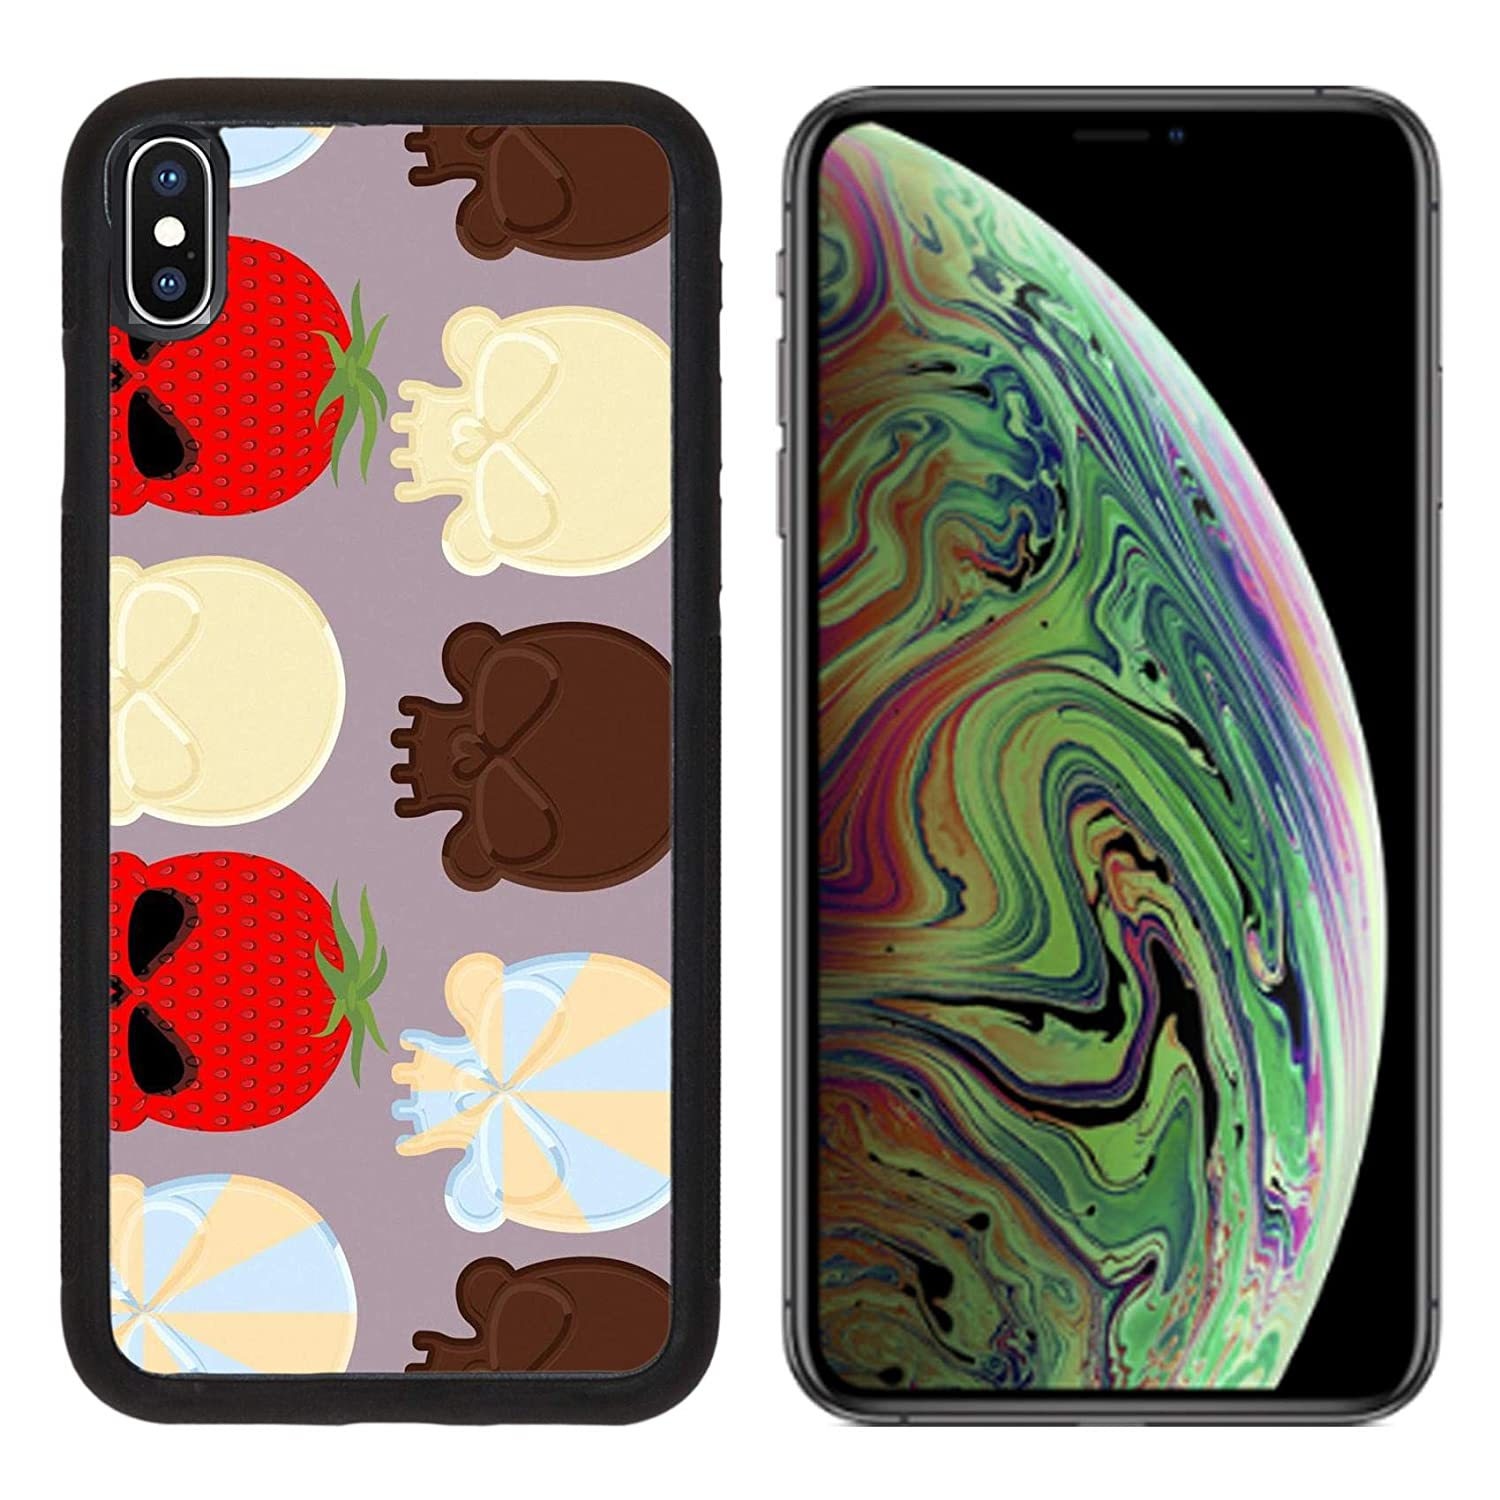 Luxlady Apple iPhone Xs MAX Case Aluminum Backplate Bumper Snap Cases ID: 43128818 Sweet Candy Skulls Seamless Pattern Head Skeleton Made of Chocolate and strawb